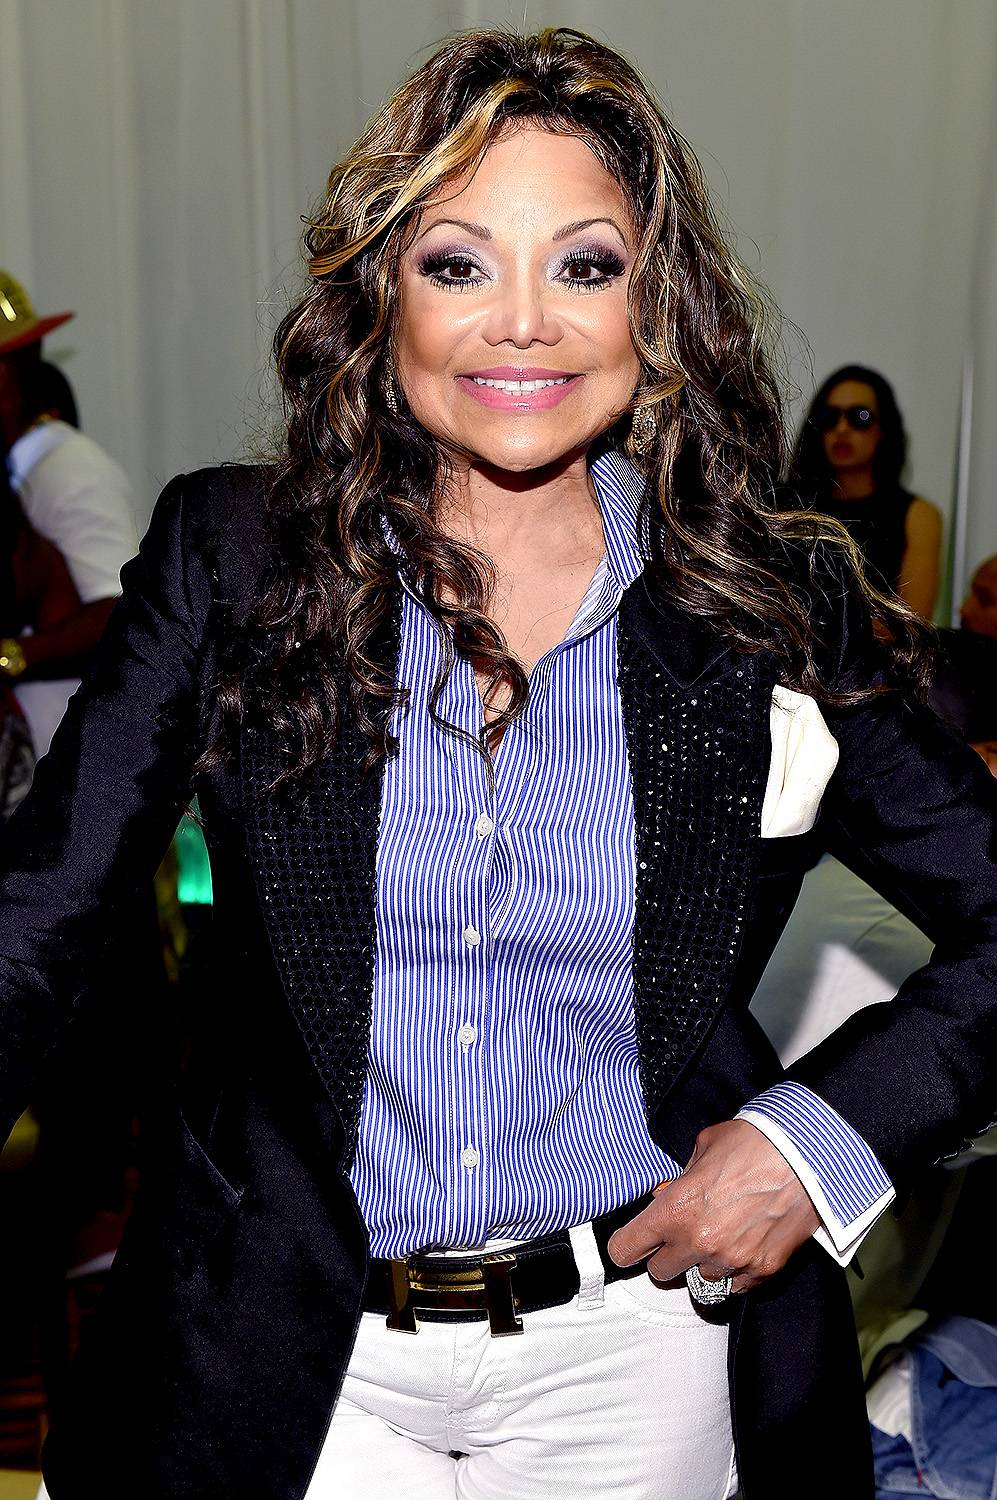 Up Like Donald Trump  - In 2011, La Toya Jackson took on Celebrity Apprentice, but she was fired in rounds eight and 10. Soon after, in 2013, La Toya landed her own show on the OWN Network called Life With La Toya, where she gets candid about her life in and out of the spotlight. (Photo: Alberto E. Rodriguez/Getty Images for BET)